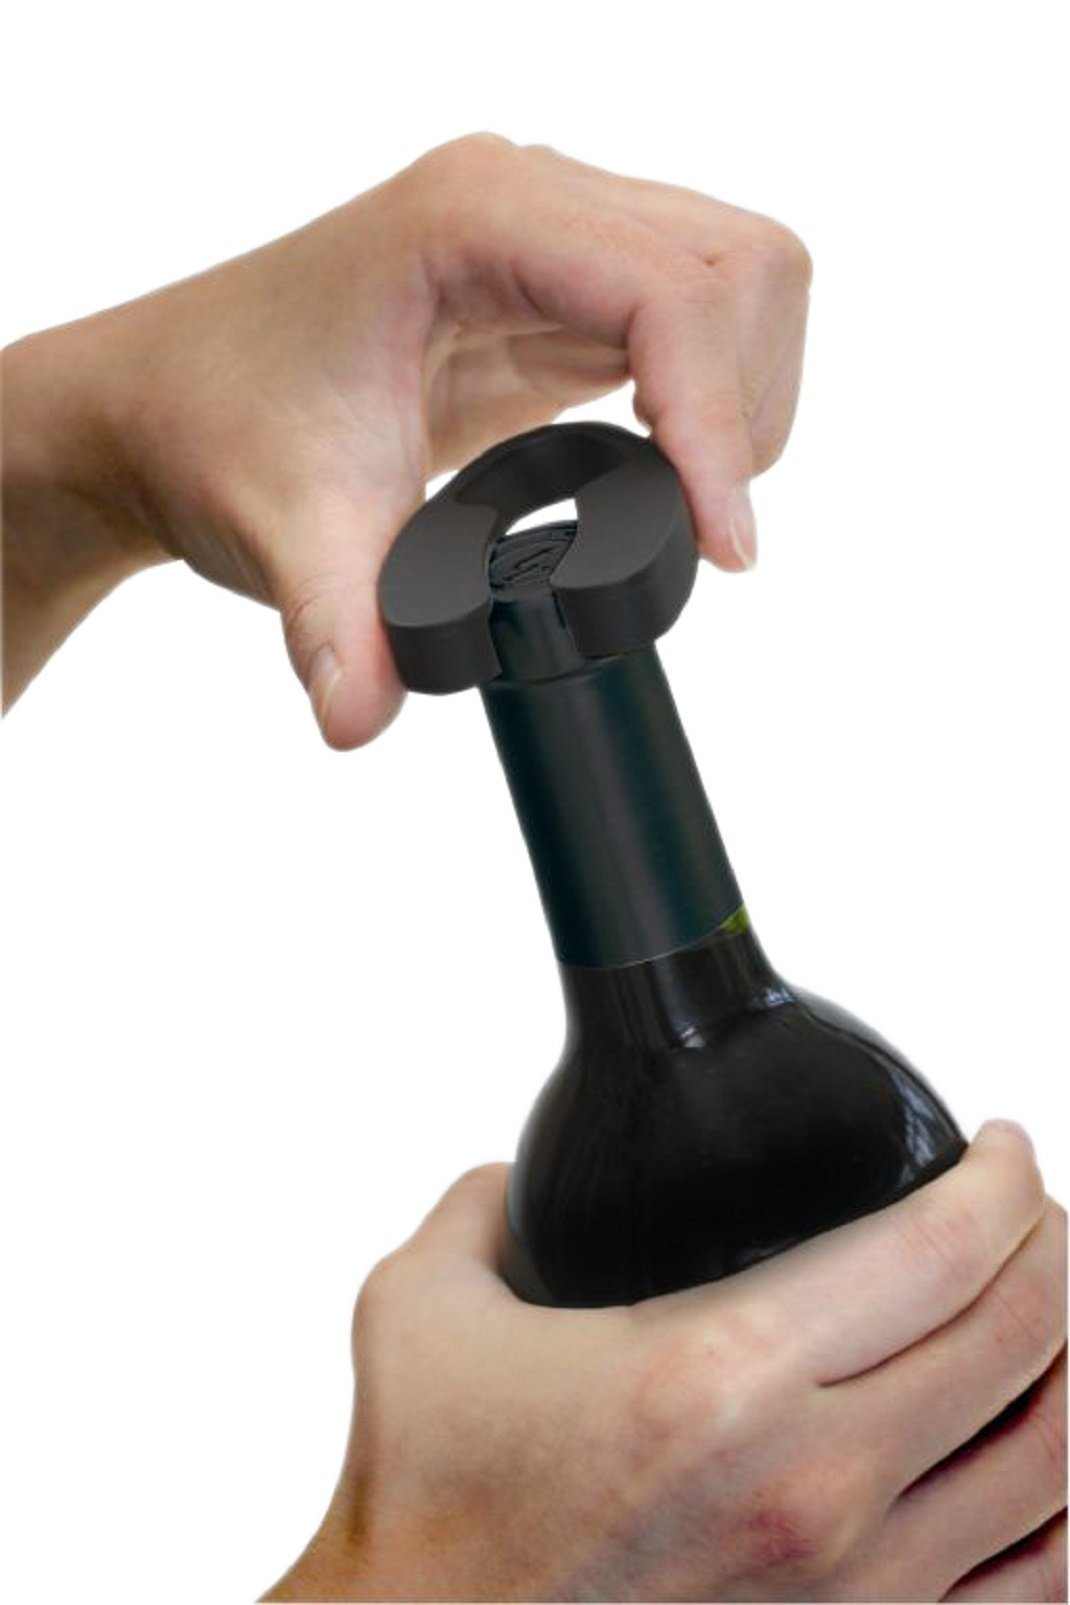 Ozeri Pro Electric Wine Opener with Wine Pourer, Stopper and Foil Cutter, in Black by Ozeri (Image #4)